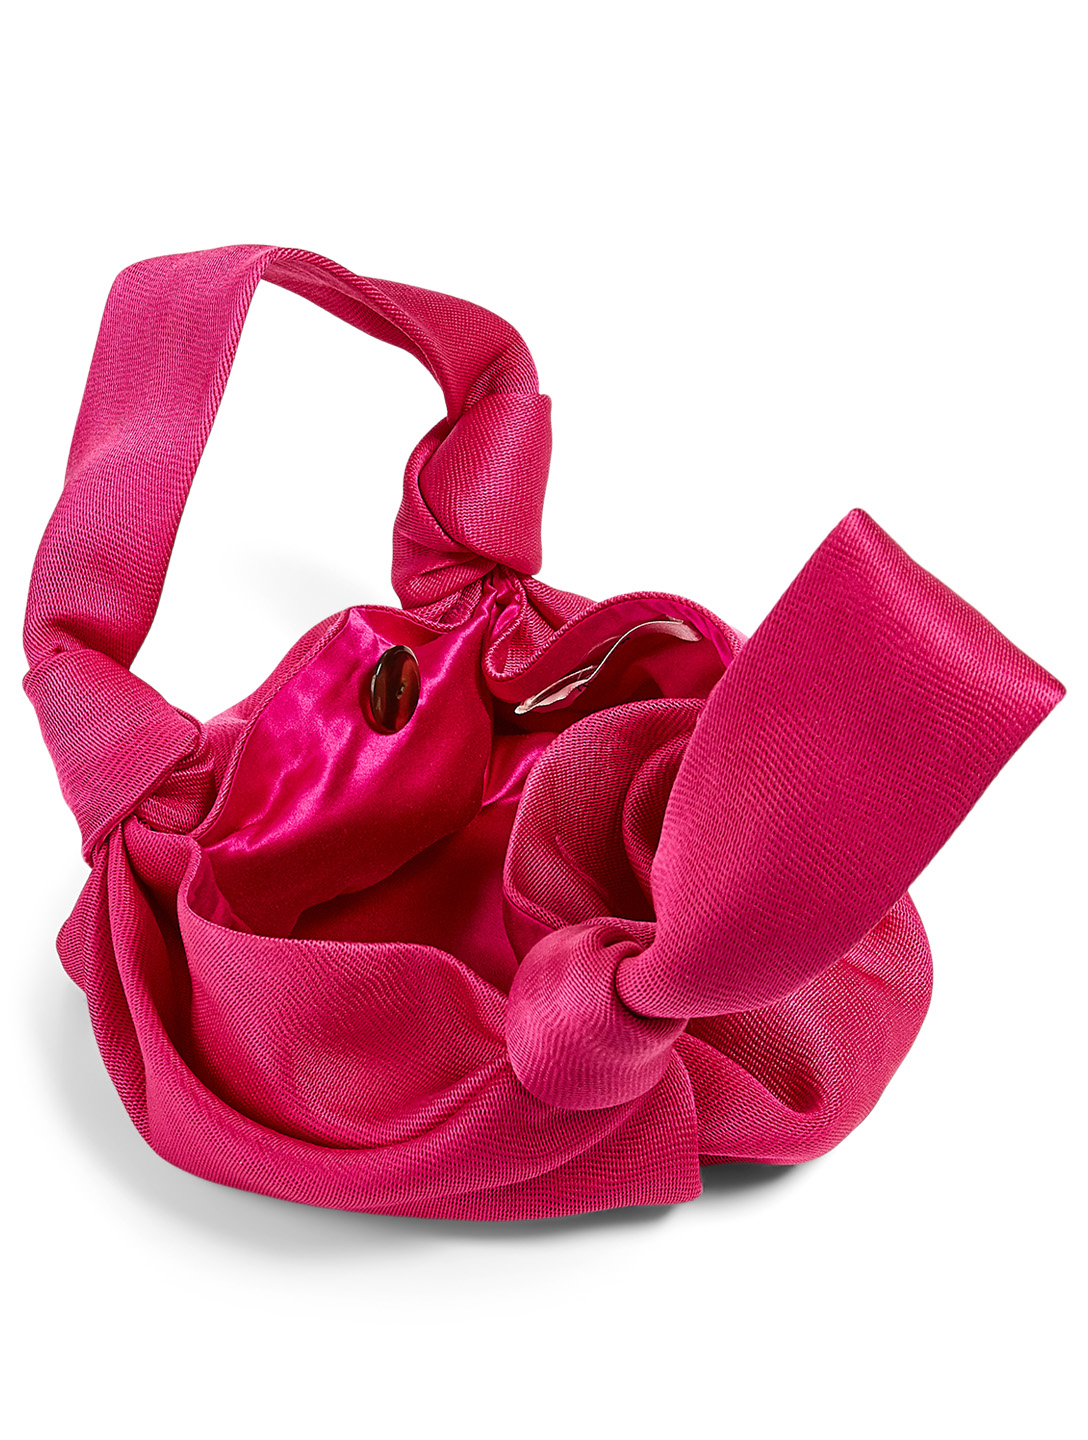 THE ROW Ascot Two Silk Bag Women's Pink